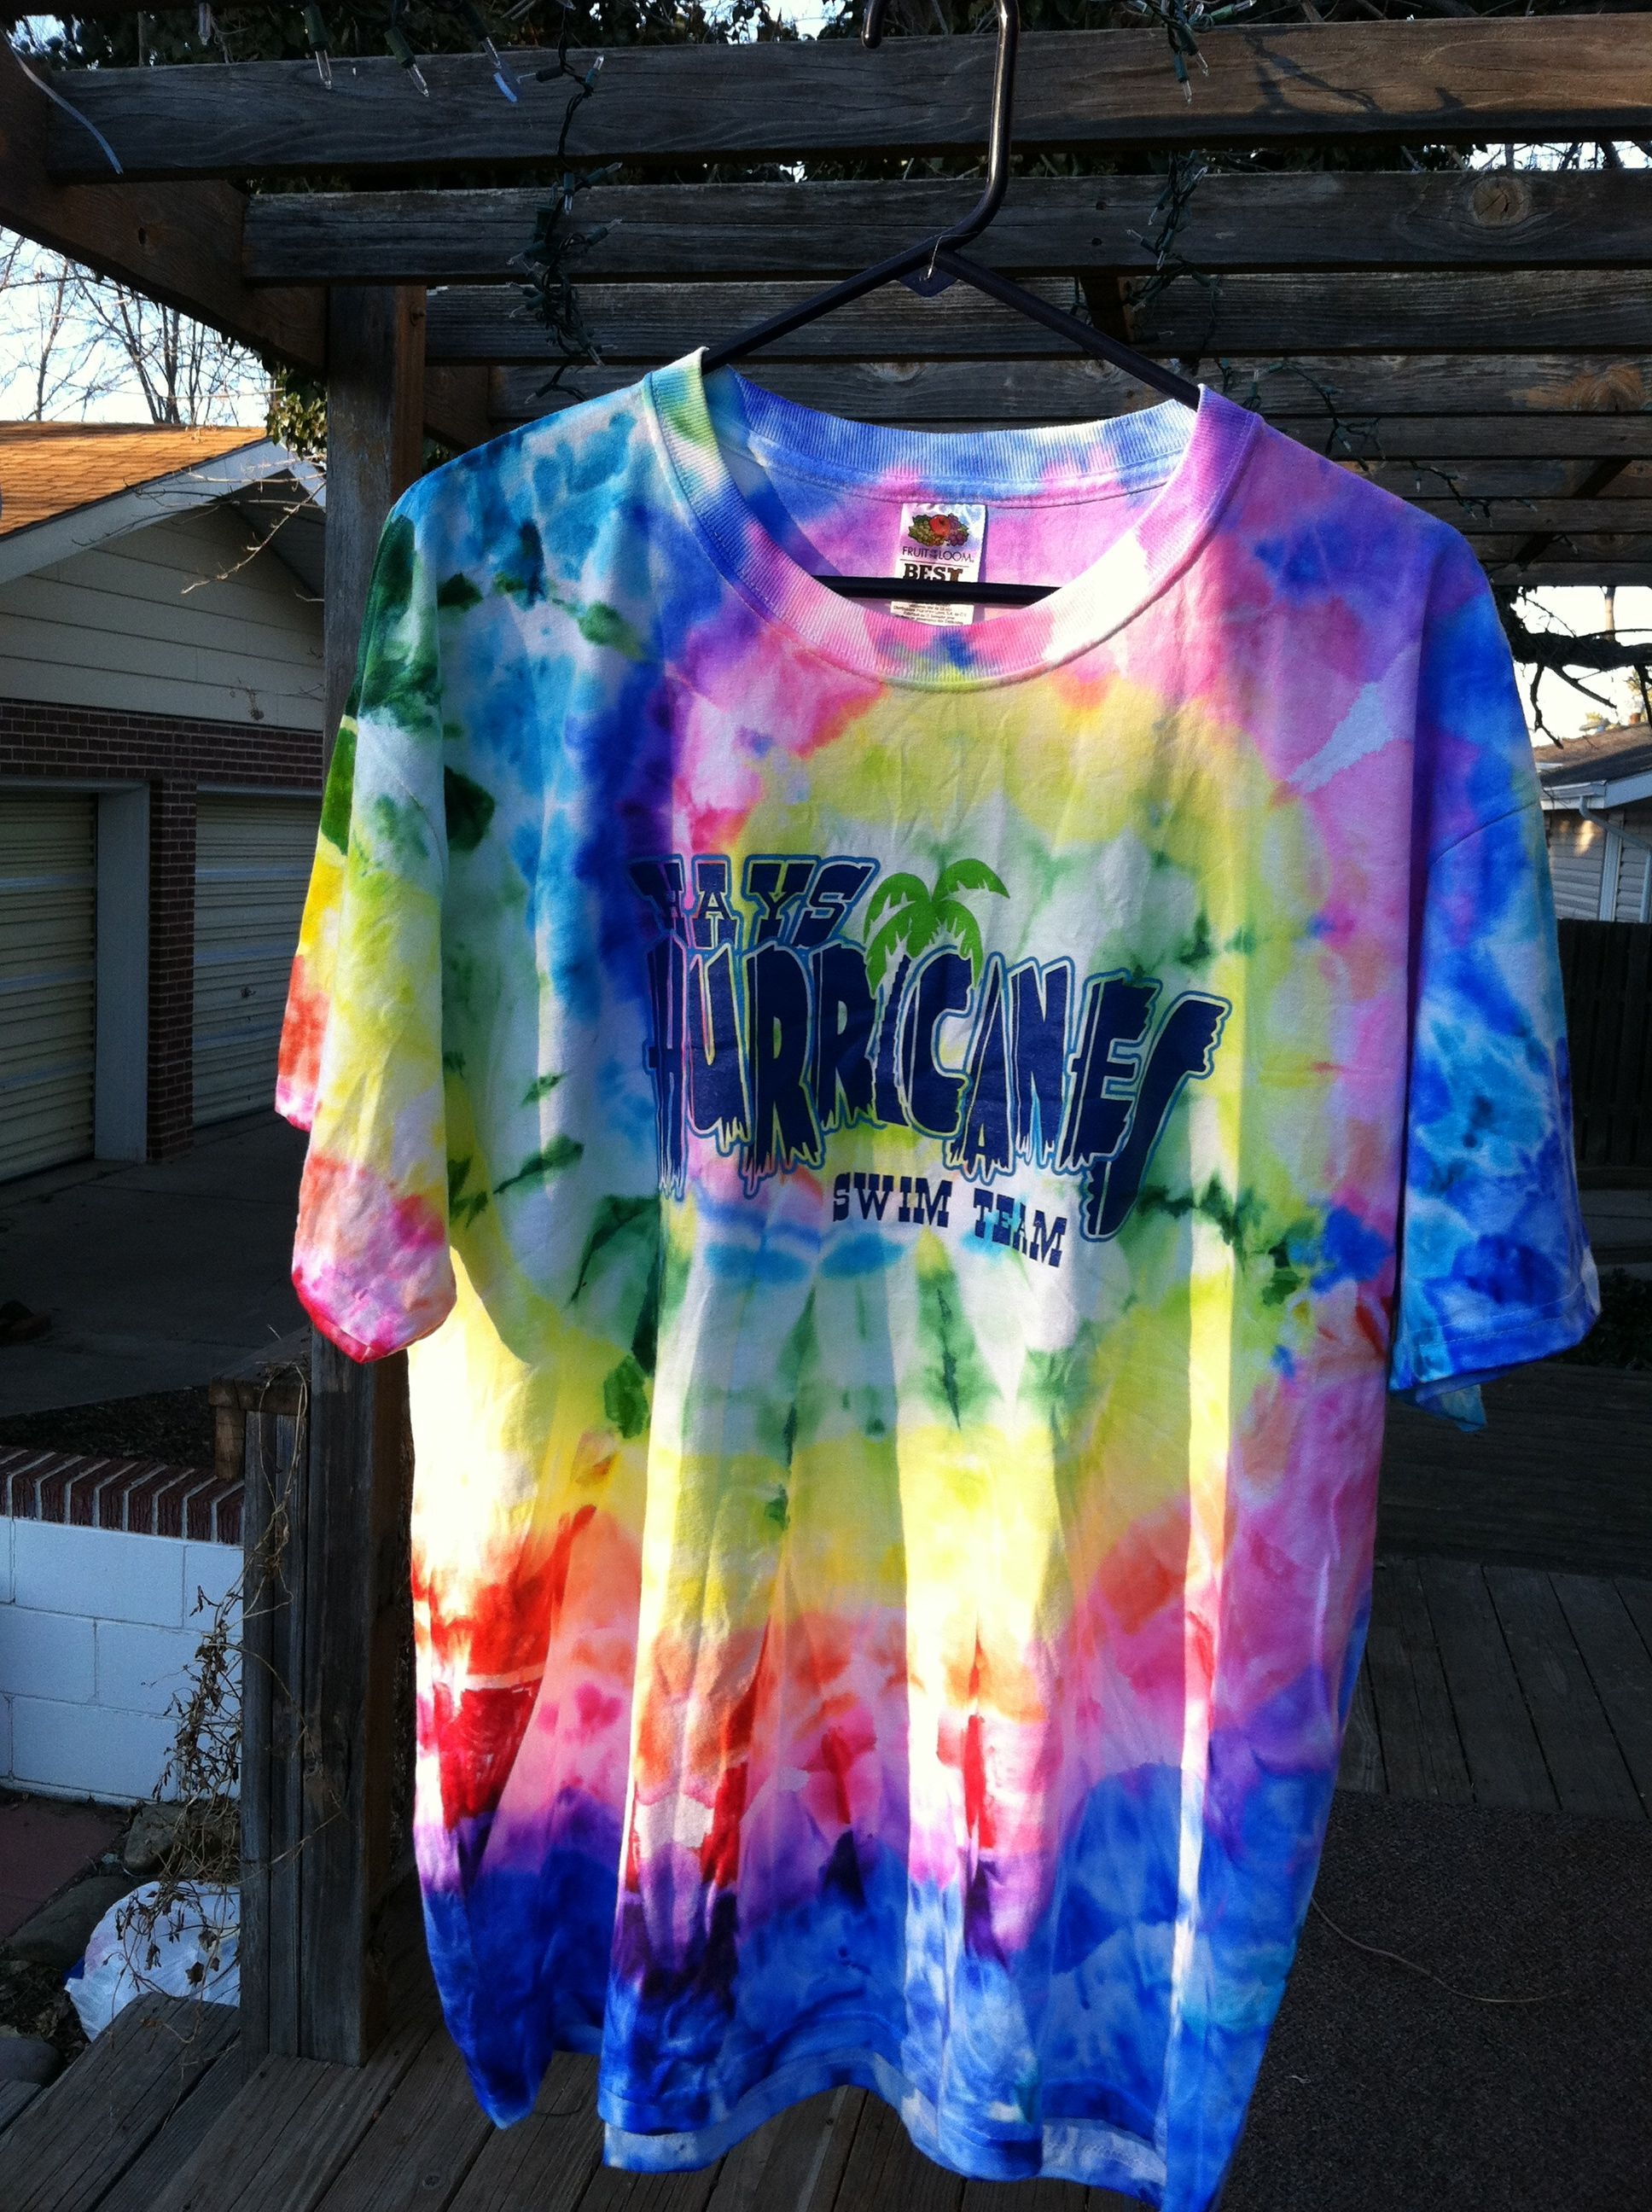 2 365 tie dye t shirts with sharpies craft ideas tie dye t shirts sharpie tie dye dye t. Black Bedroom Furniture Sets. Home Design Ideas